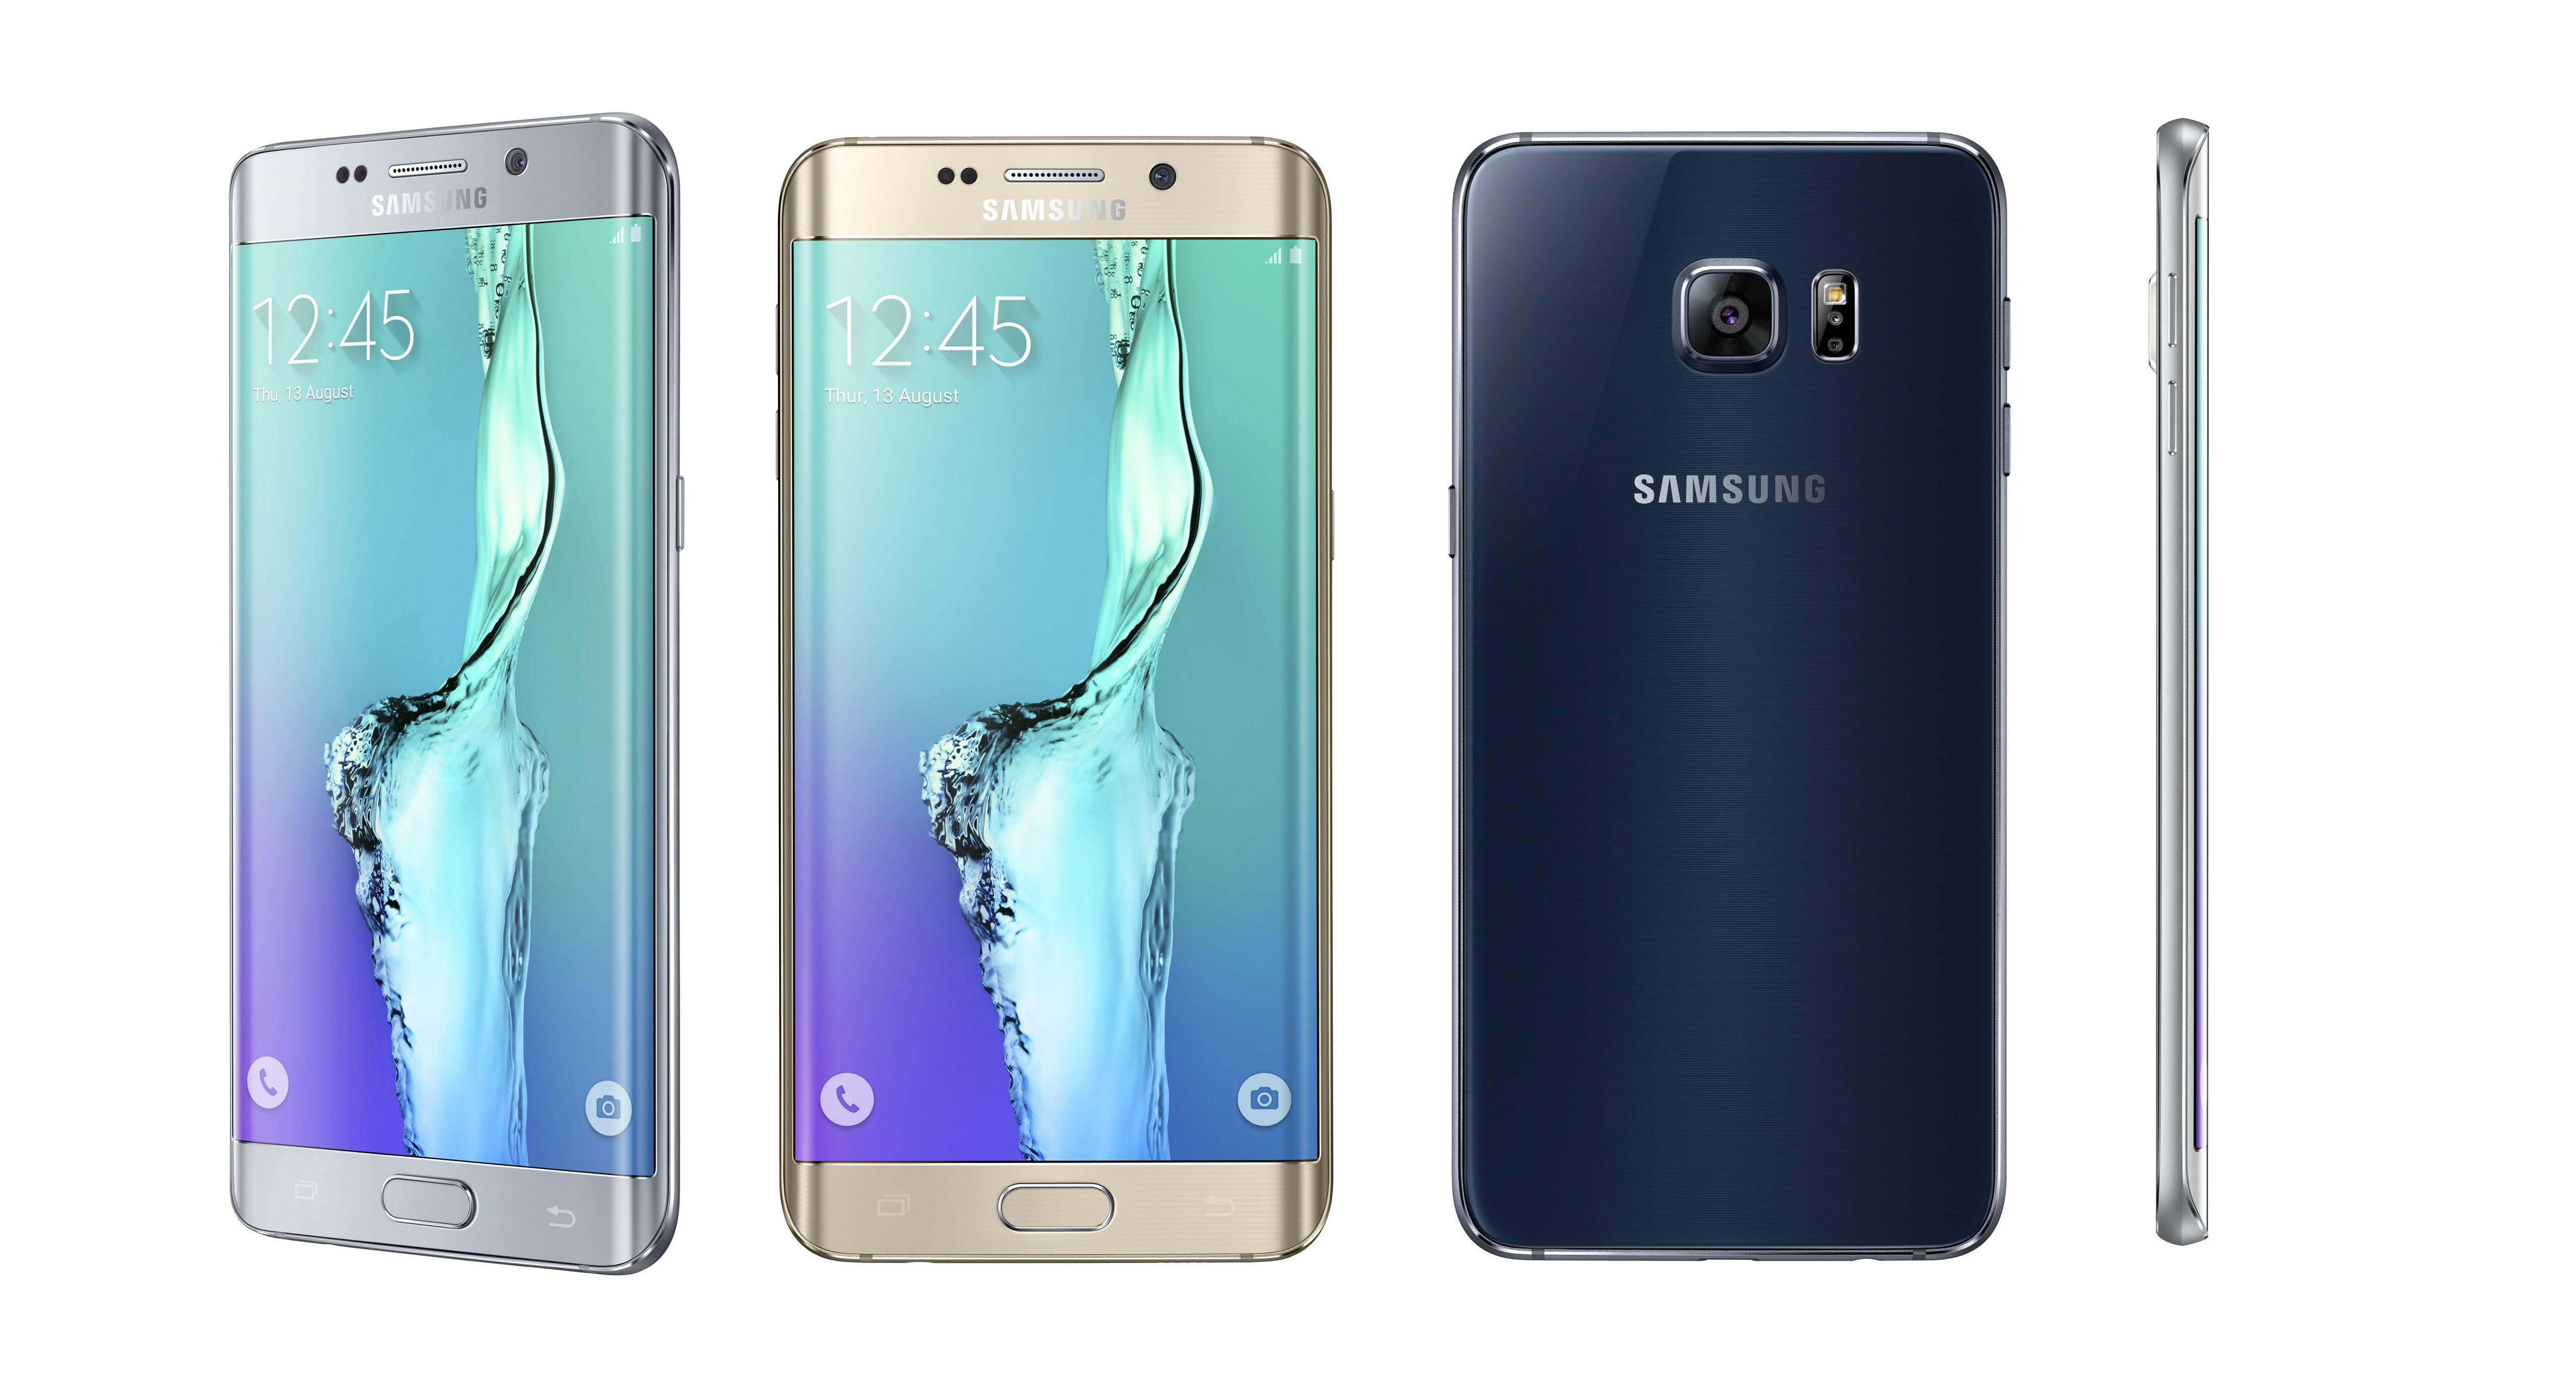 Samsung Galaxy S6 edge+ Colors